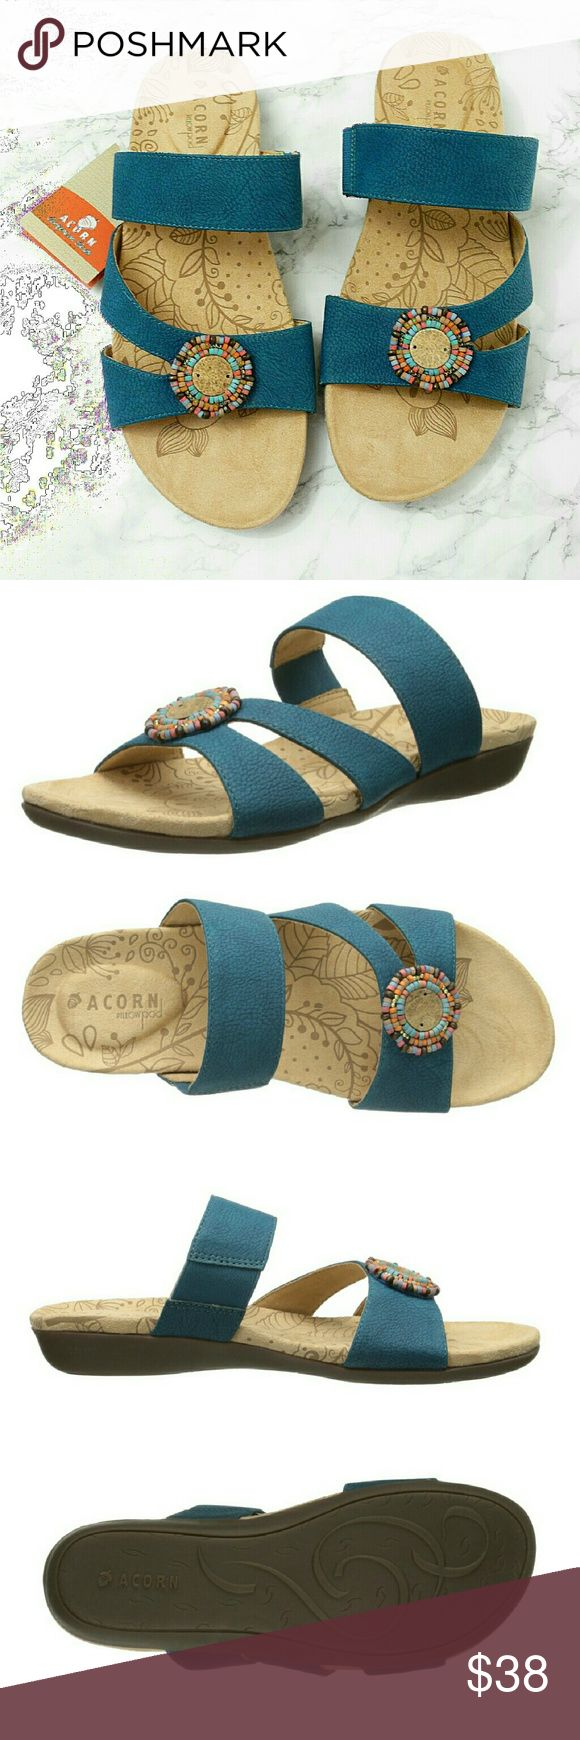 ☡ Mega Sale! Beaded Colorful Boho Sandals by Acorn Brand NWT! The most comfortable sandals you'll ever own! These boho-inspired sandals by Acorn feature a padded footbed (they call it the pillow pod!), colorful beaded mandalas at toe, & a triple strap design in lovely teal blue-green.  Huge discount off retail, in a hard to find color & style! Size 10 fits TTS. Comment with any questions.  No additional discount. No trades! Acorn Shoes Sandals